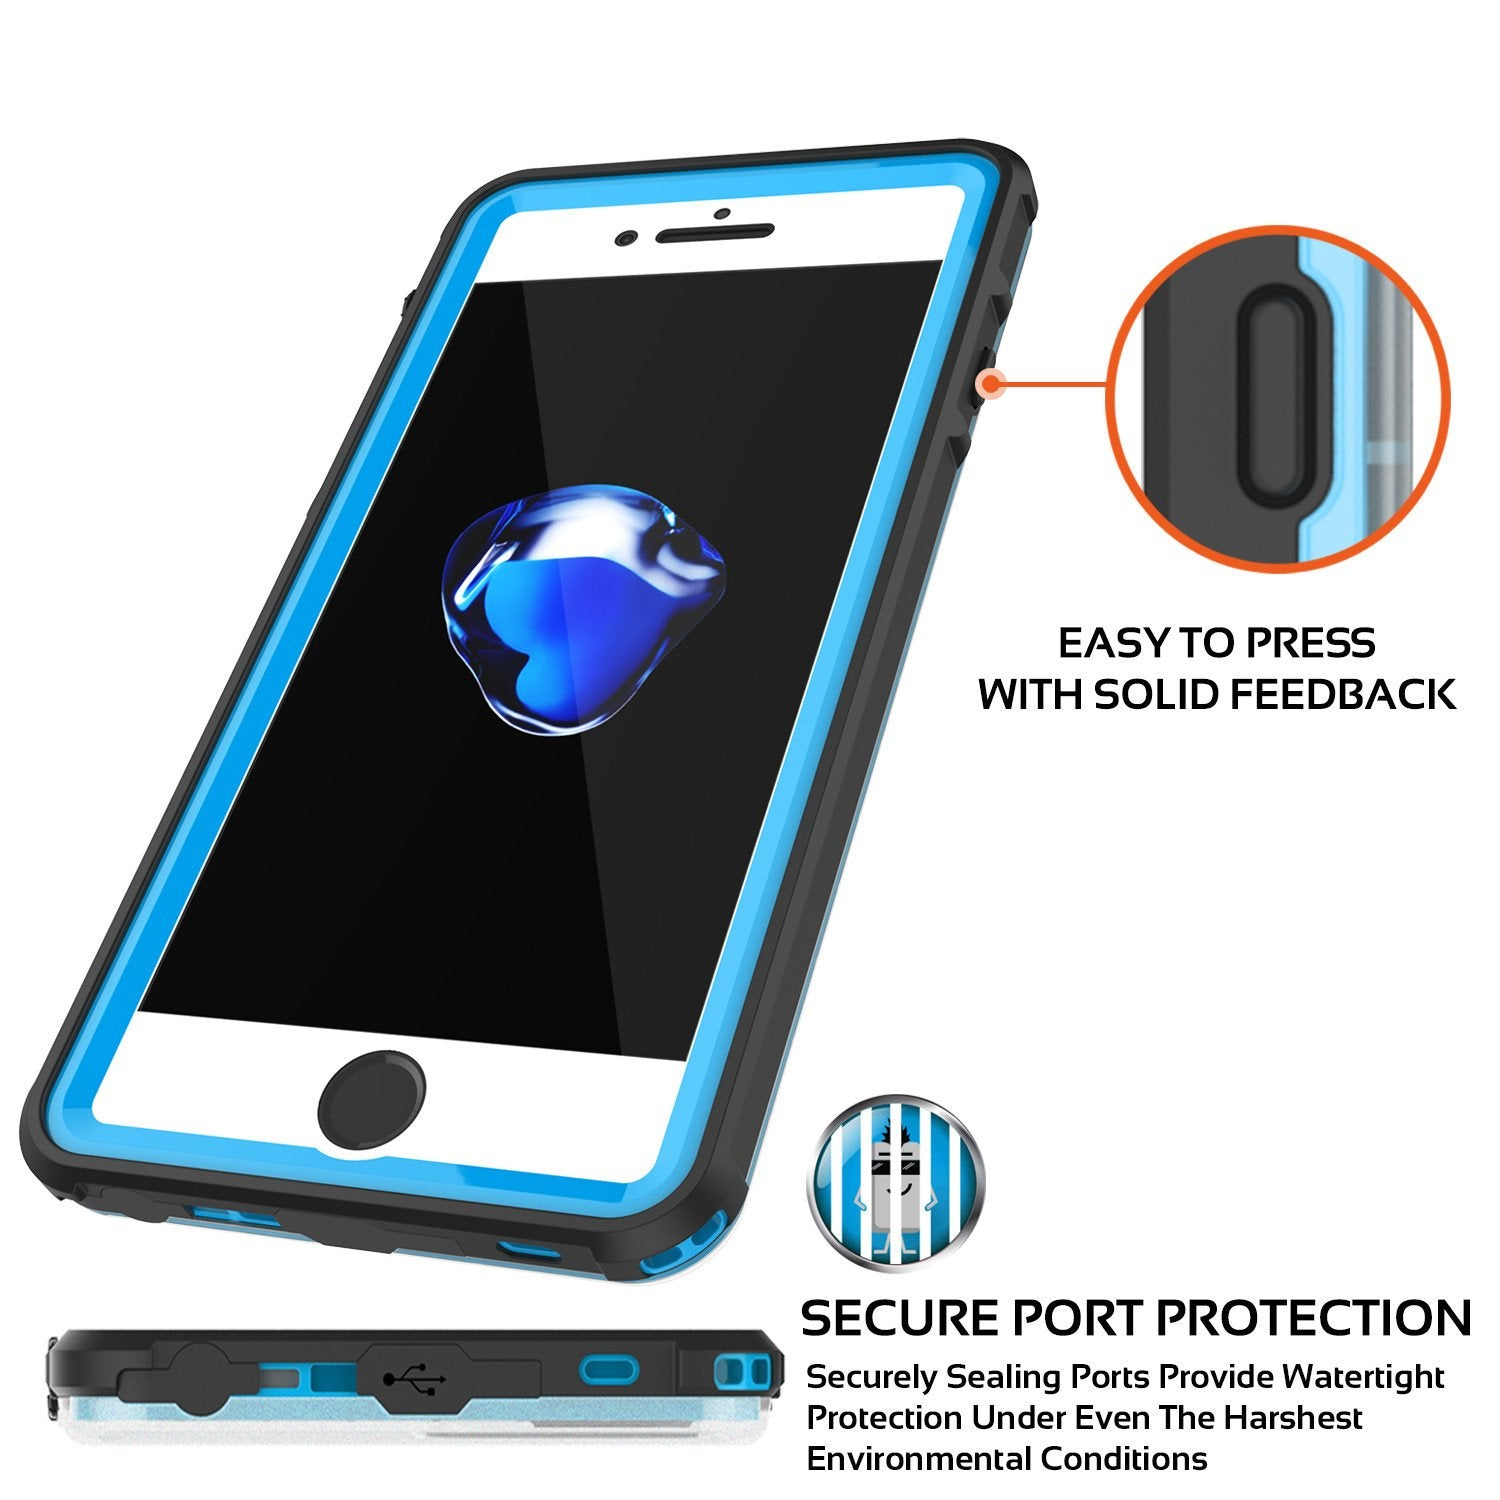 Apple iPhone 7 Waterproof Case, PUNKcase CRYSTAL Light Blue  W/ Attached Screen Protector  | Warranty - PunkCase NZ